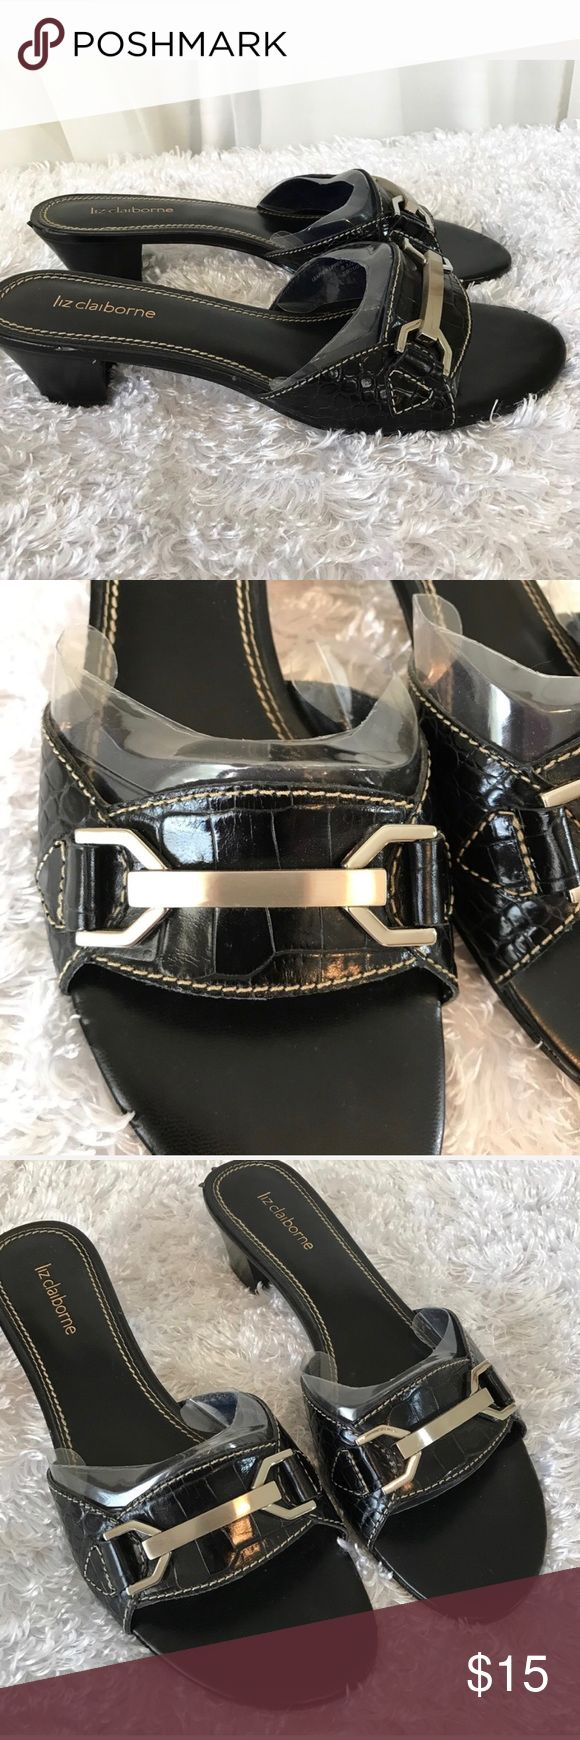 Liz Claiborne Black Slip On Heels 8.5 New without box 8.5 Medium Width   I ship Monday through Saturday, weather permitting. If you have a moment check out my other items. Thank you! Liz Claiborne Shoes Heels